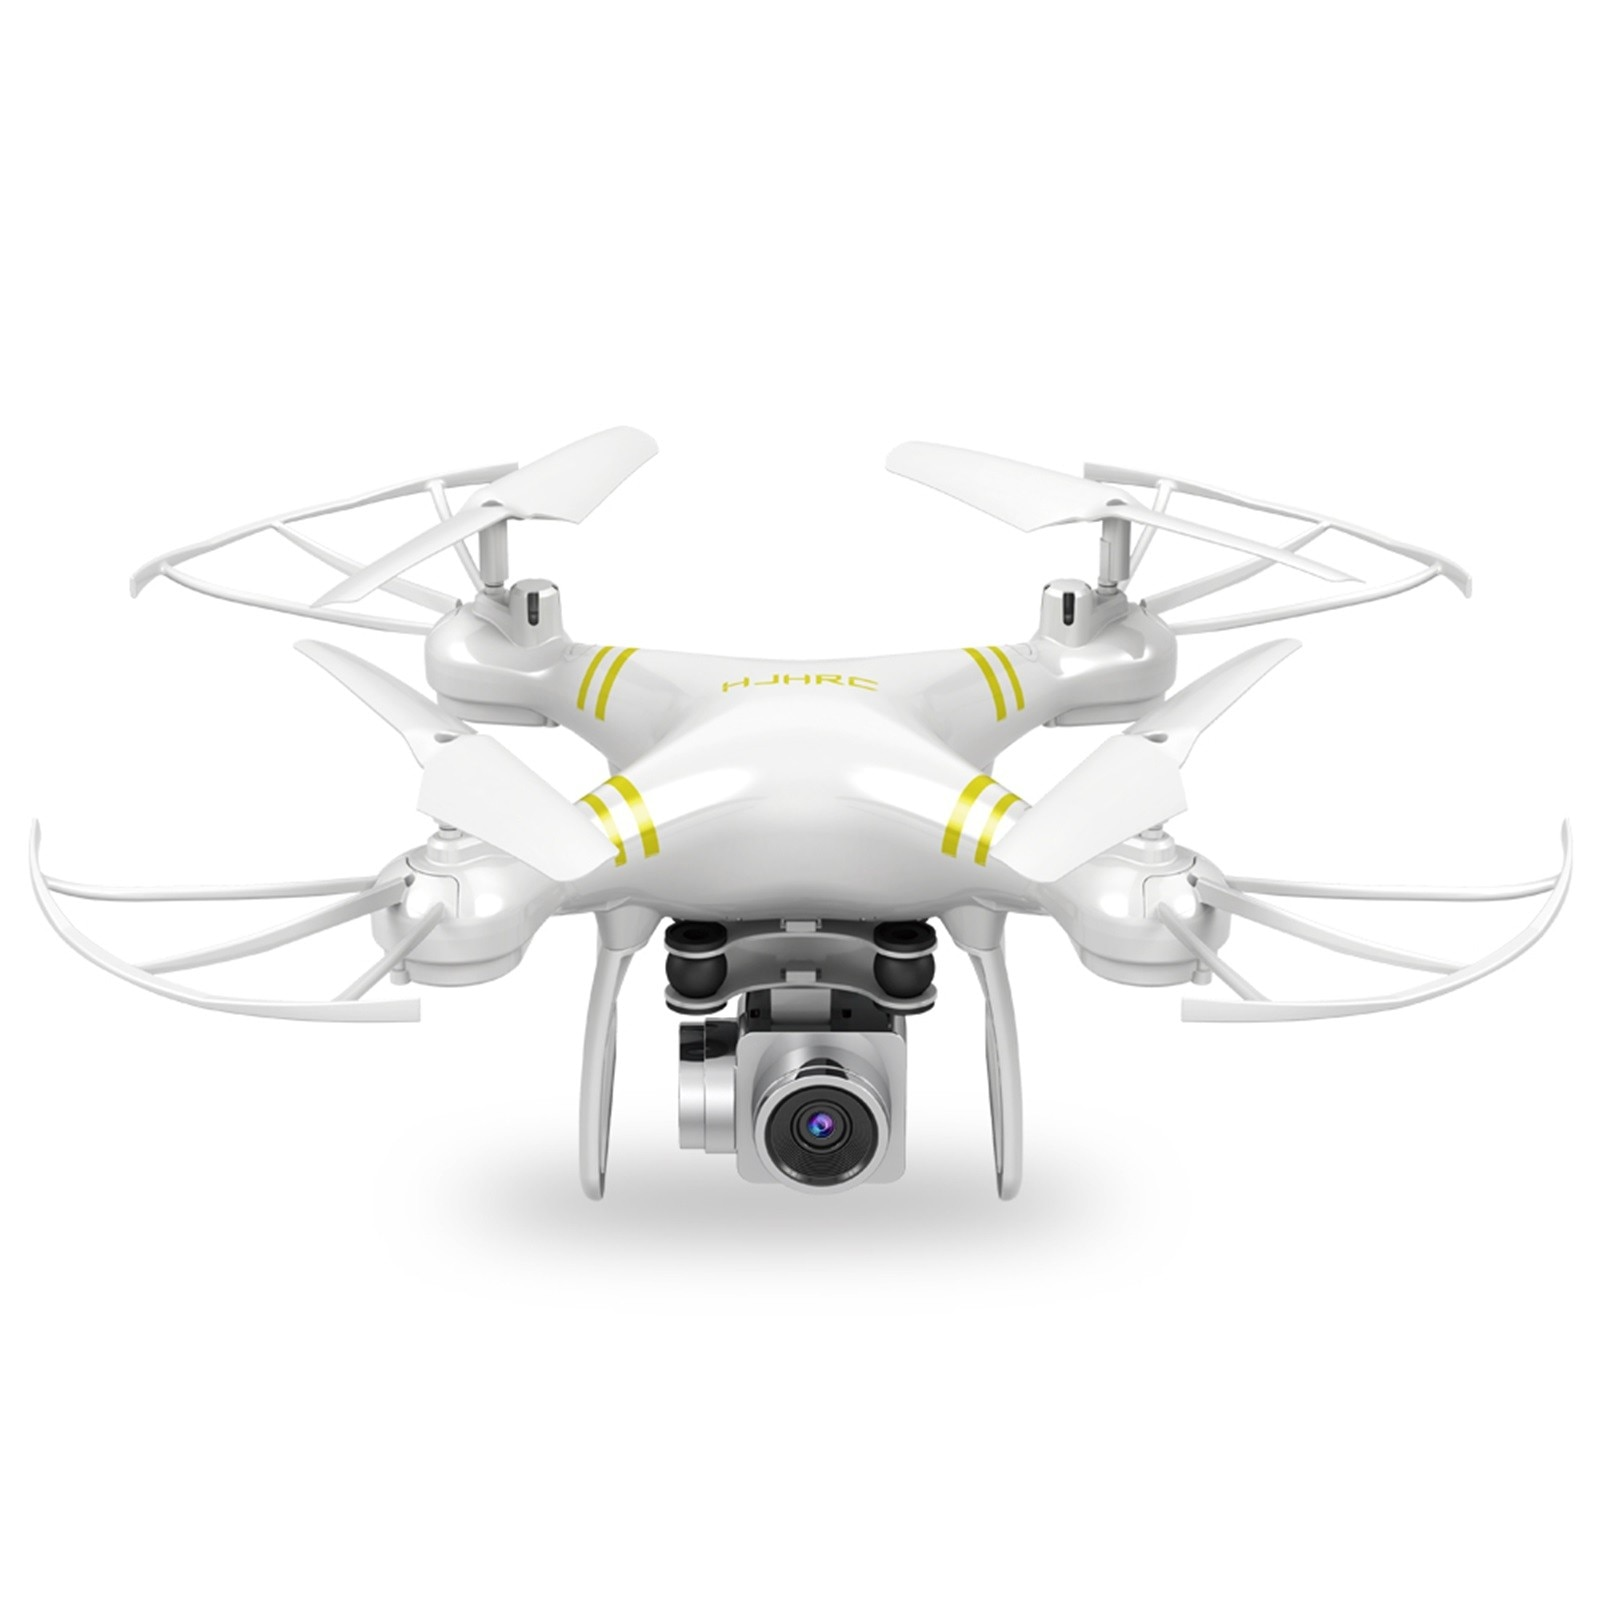 Hfb12786f290b451aa1d92132ea75f8b3J - Hjhrc Four-axis Aerial Photography Aircraft Drone With Camera Hd 4k Wifi Fpv Foldable Drone Height Holding Headless Quadcopter